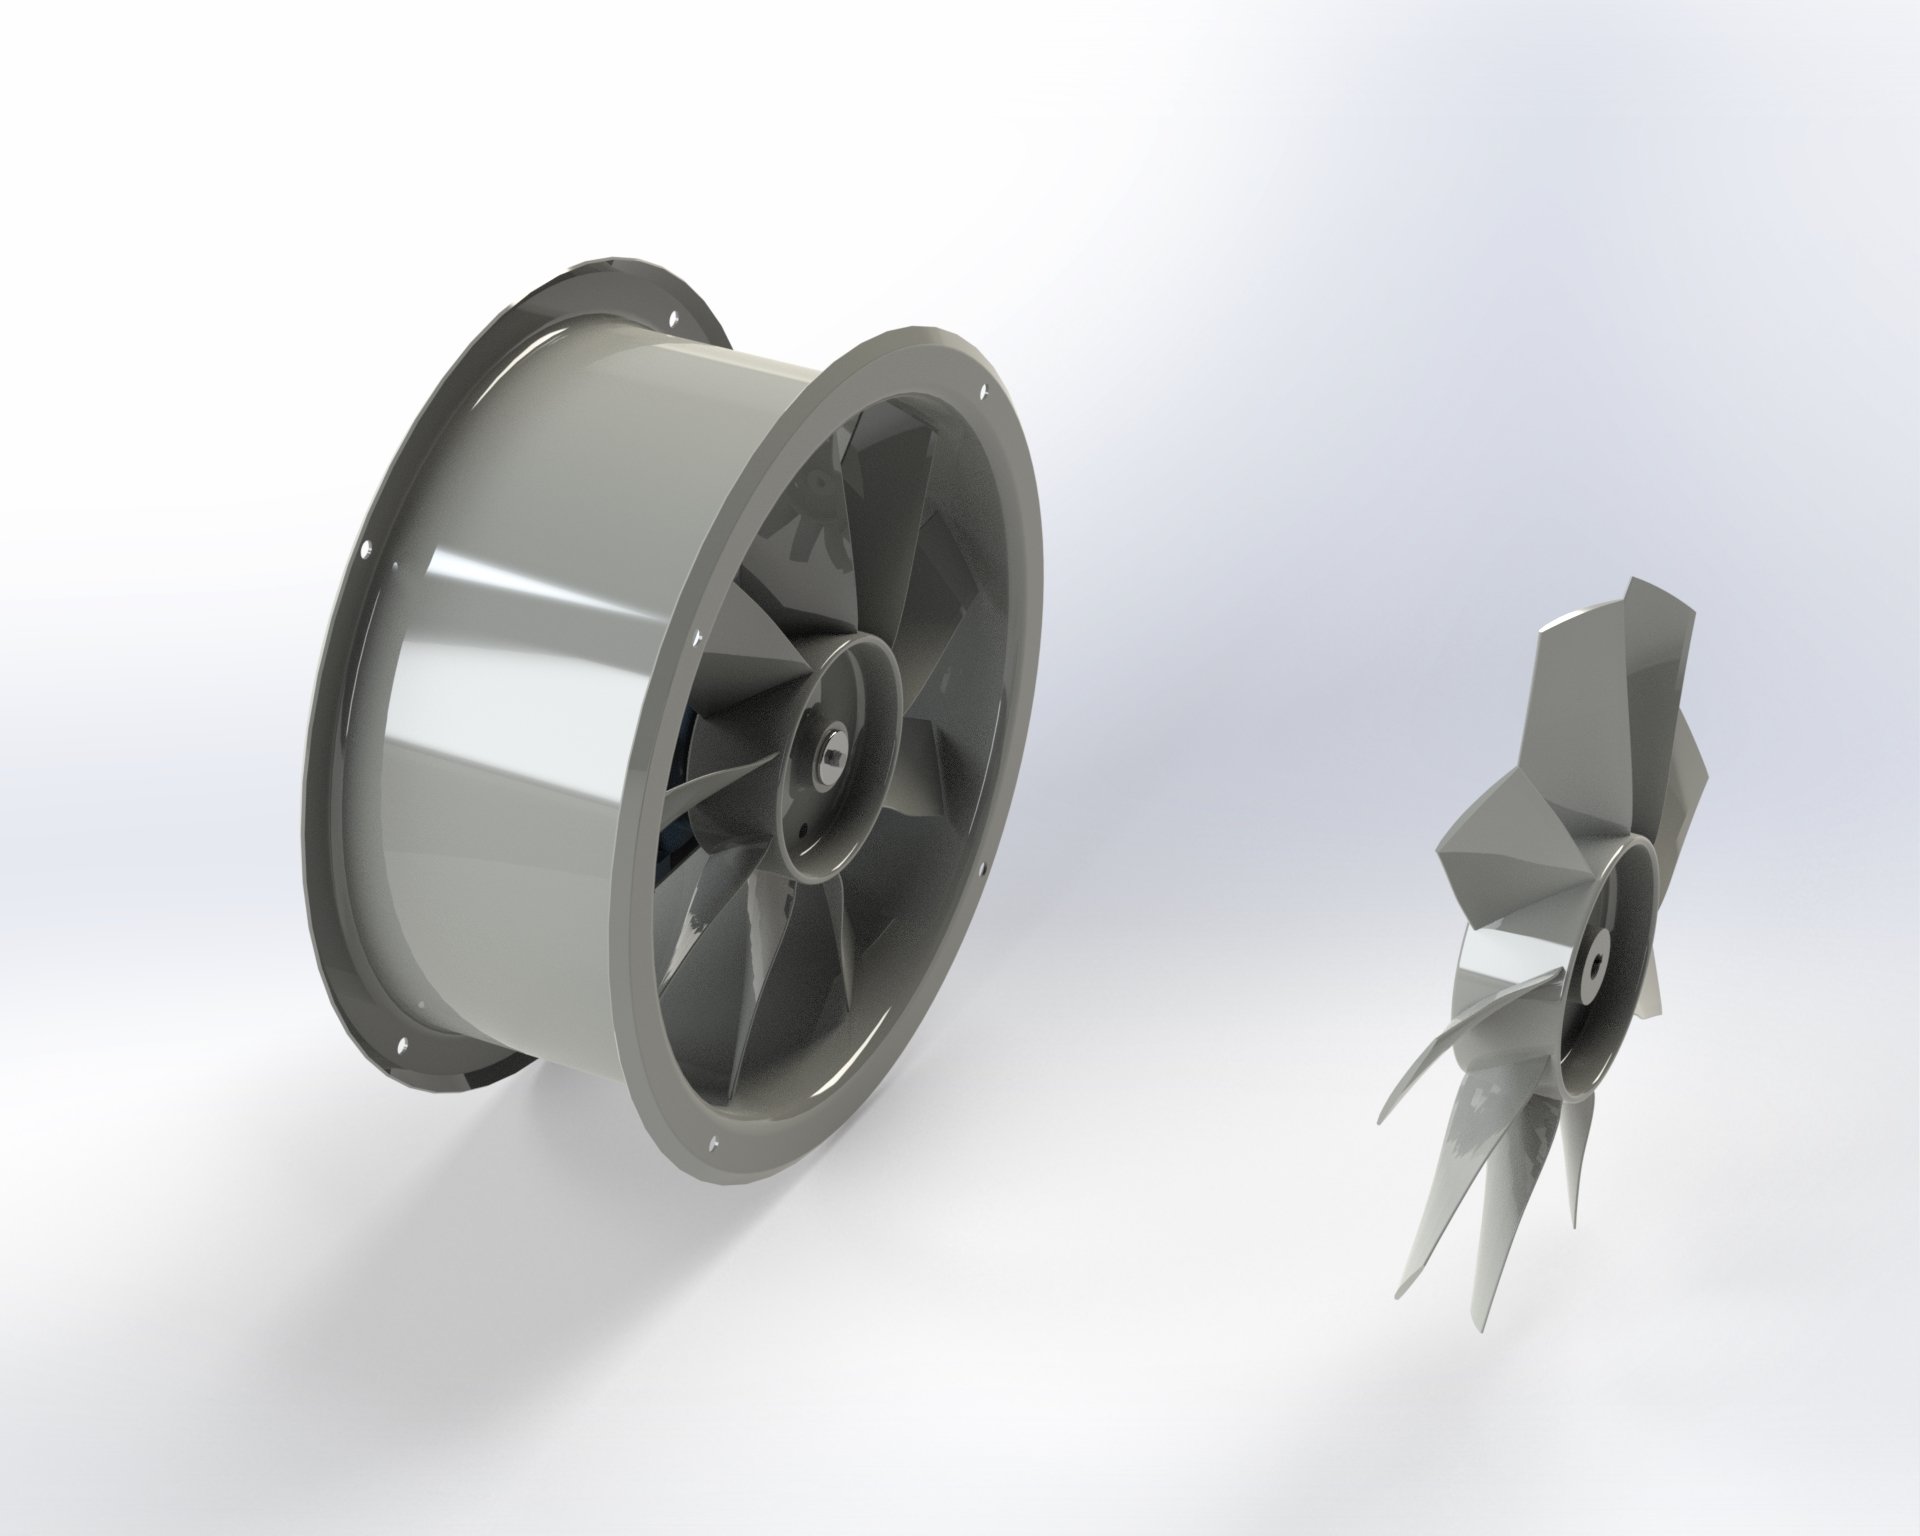 Axial-flow fan with light alloy die-cast impeller with wing-profile blades. Double flange ducting drum. Directly coupled motor.